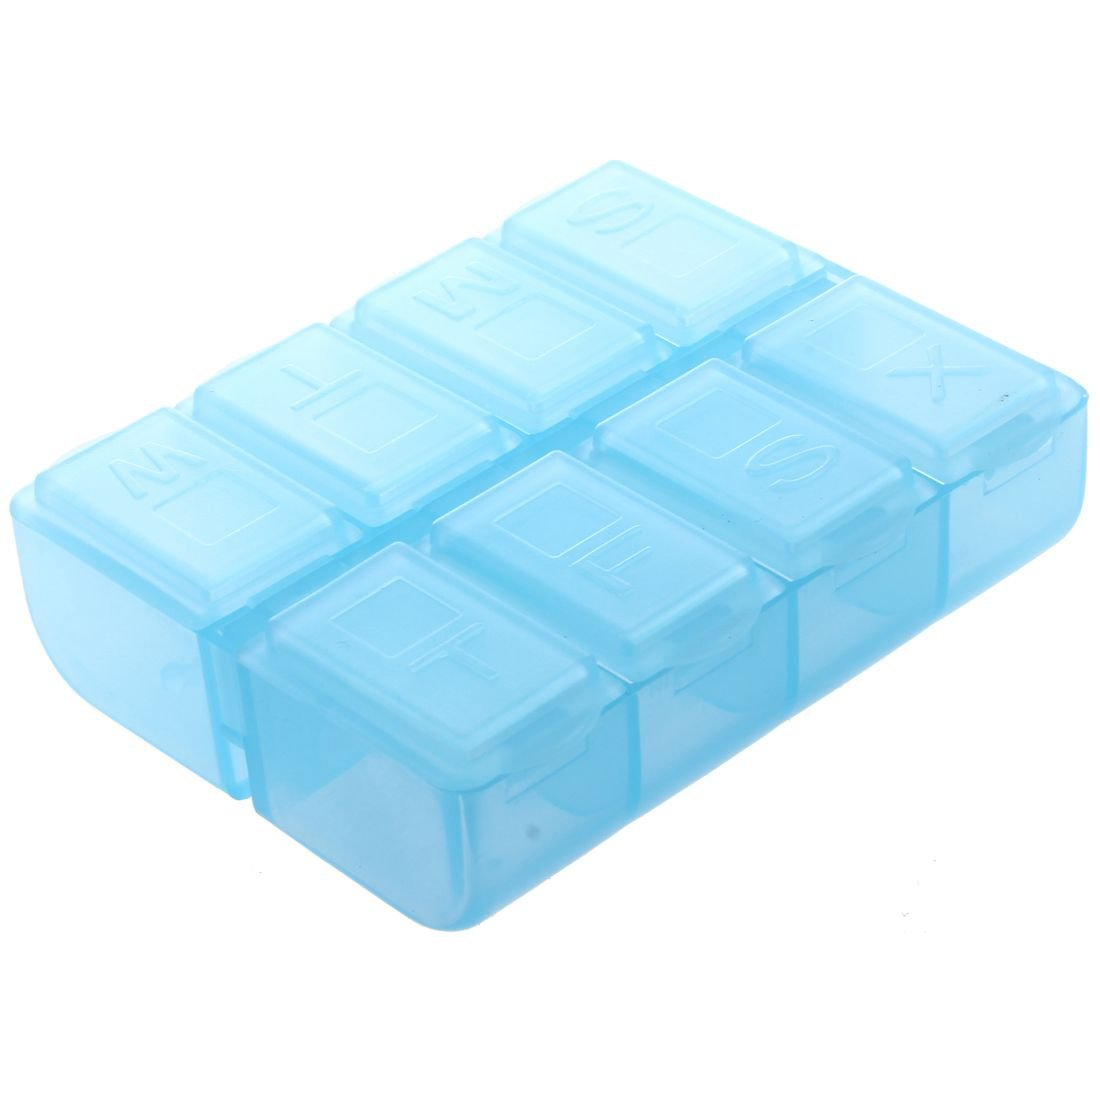 Pill Box - TOOGOO(R) Plastic Rectangle 8 Compartments 7 Days Medicine Pill Box Blue